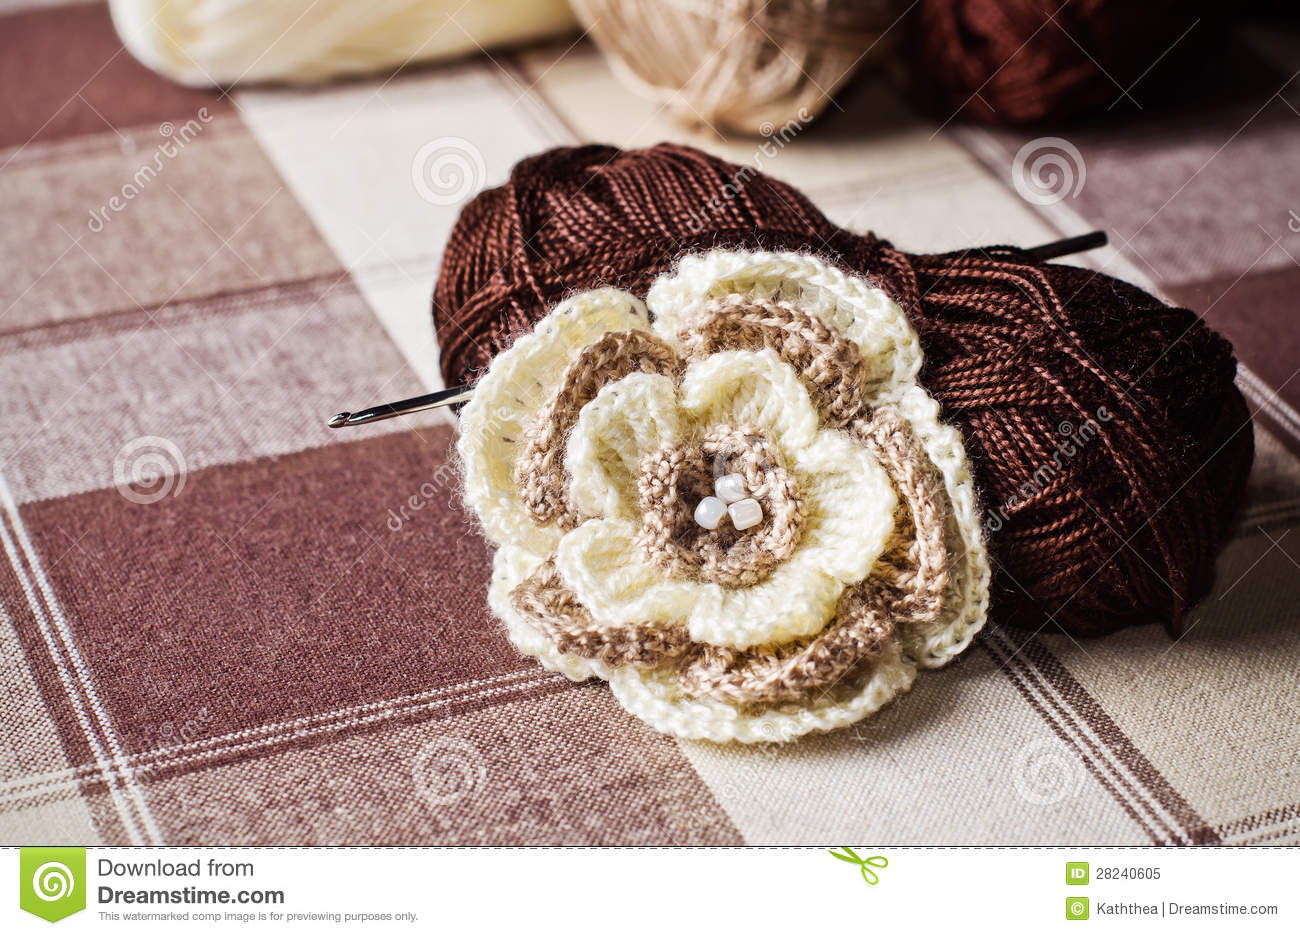 Crochet Work : Crochet work: skeins of yarn, crochet hook and crocheted flower.